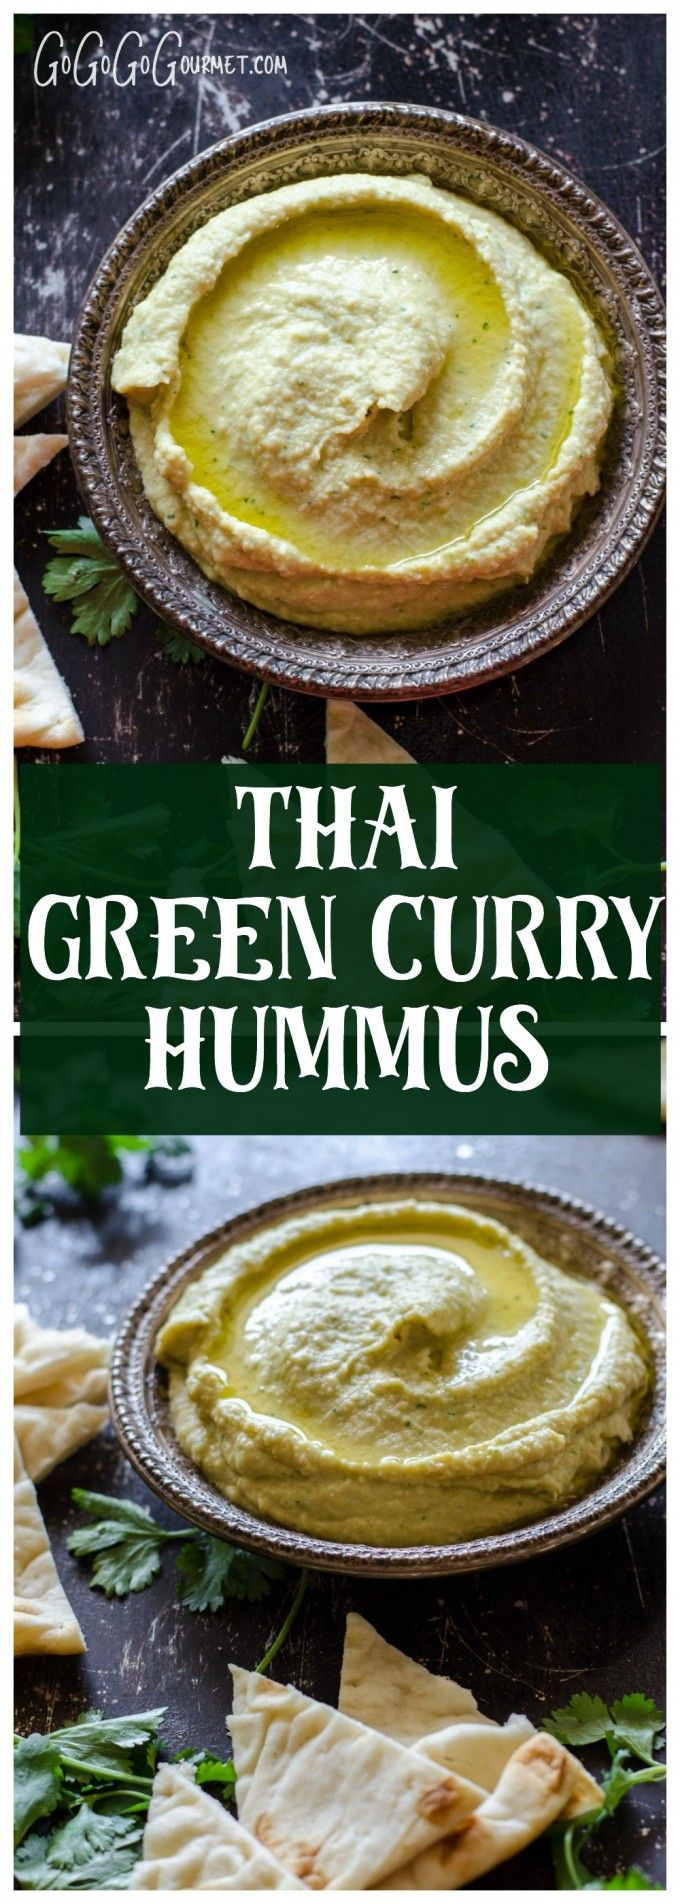 Easy, spicy and HEALTHY! You'll love this Thai Green Curry Hummus. | Go Go Go Gourmet via @gogogogourmet